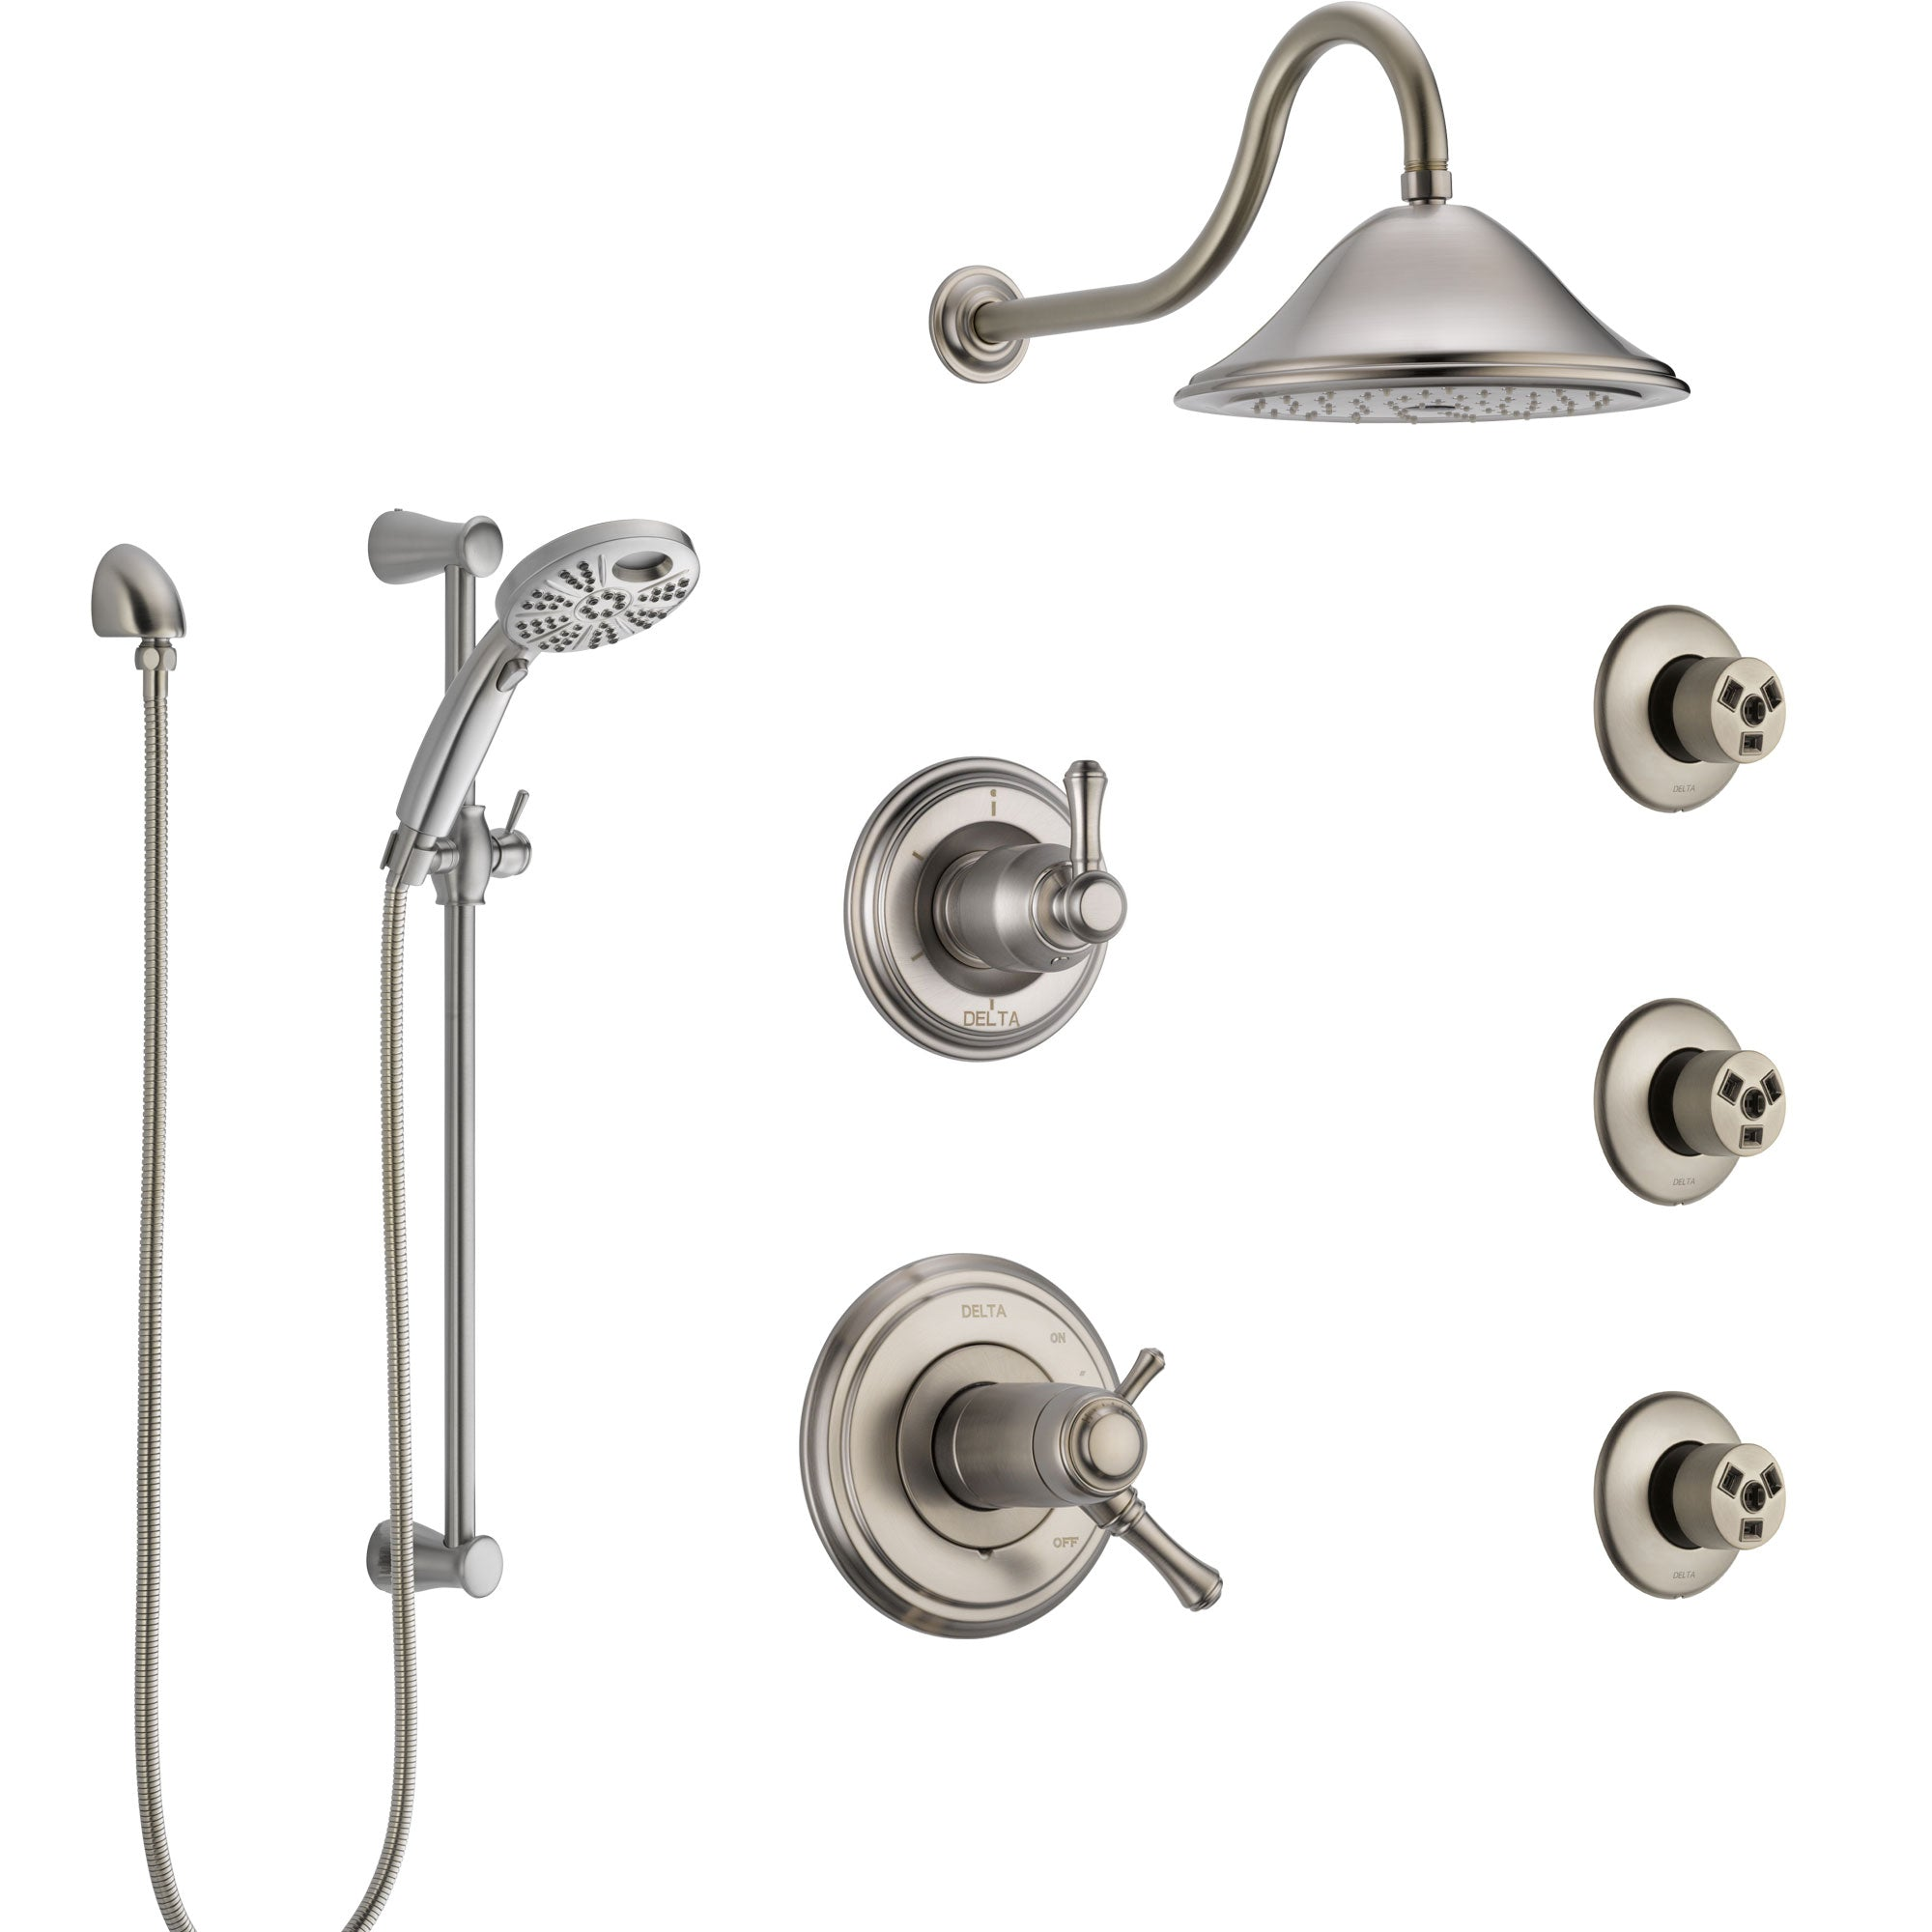 Delta Cassidy Dual Thermostatic Control Stainless Steel Finish Shower System, Diverter, Showerhead, 3 Body Sprays, and Temp2O Hand Shower SS17T2971SS5